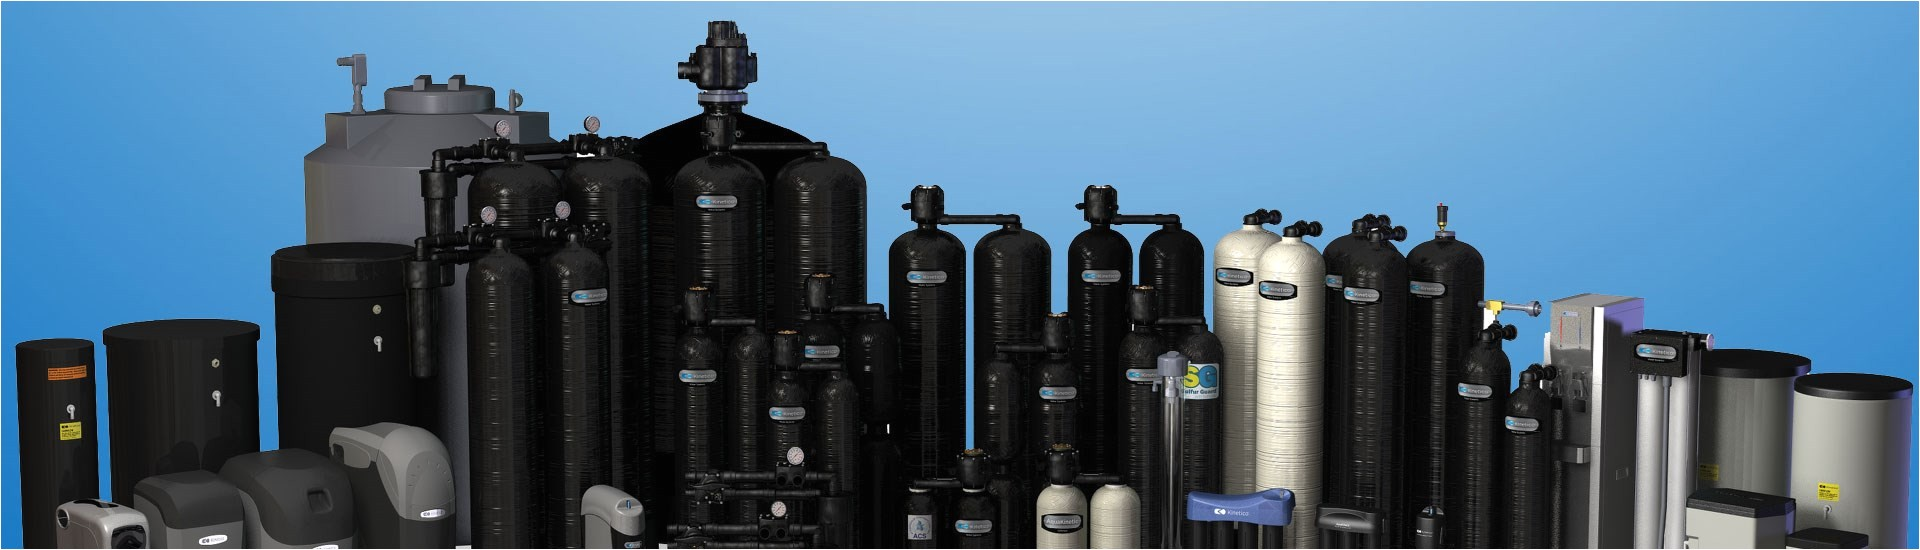 kinetico stands proudly behind the quality and reliability of its innovative water treatment products